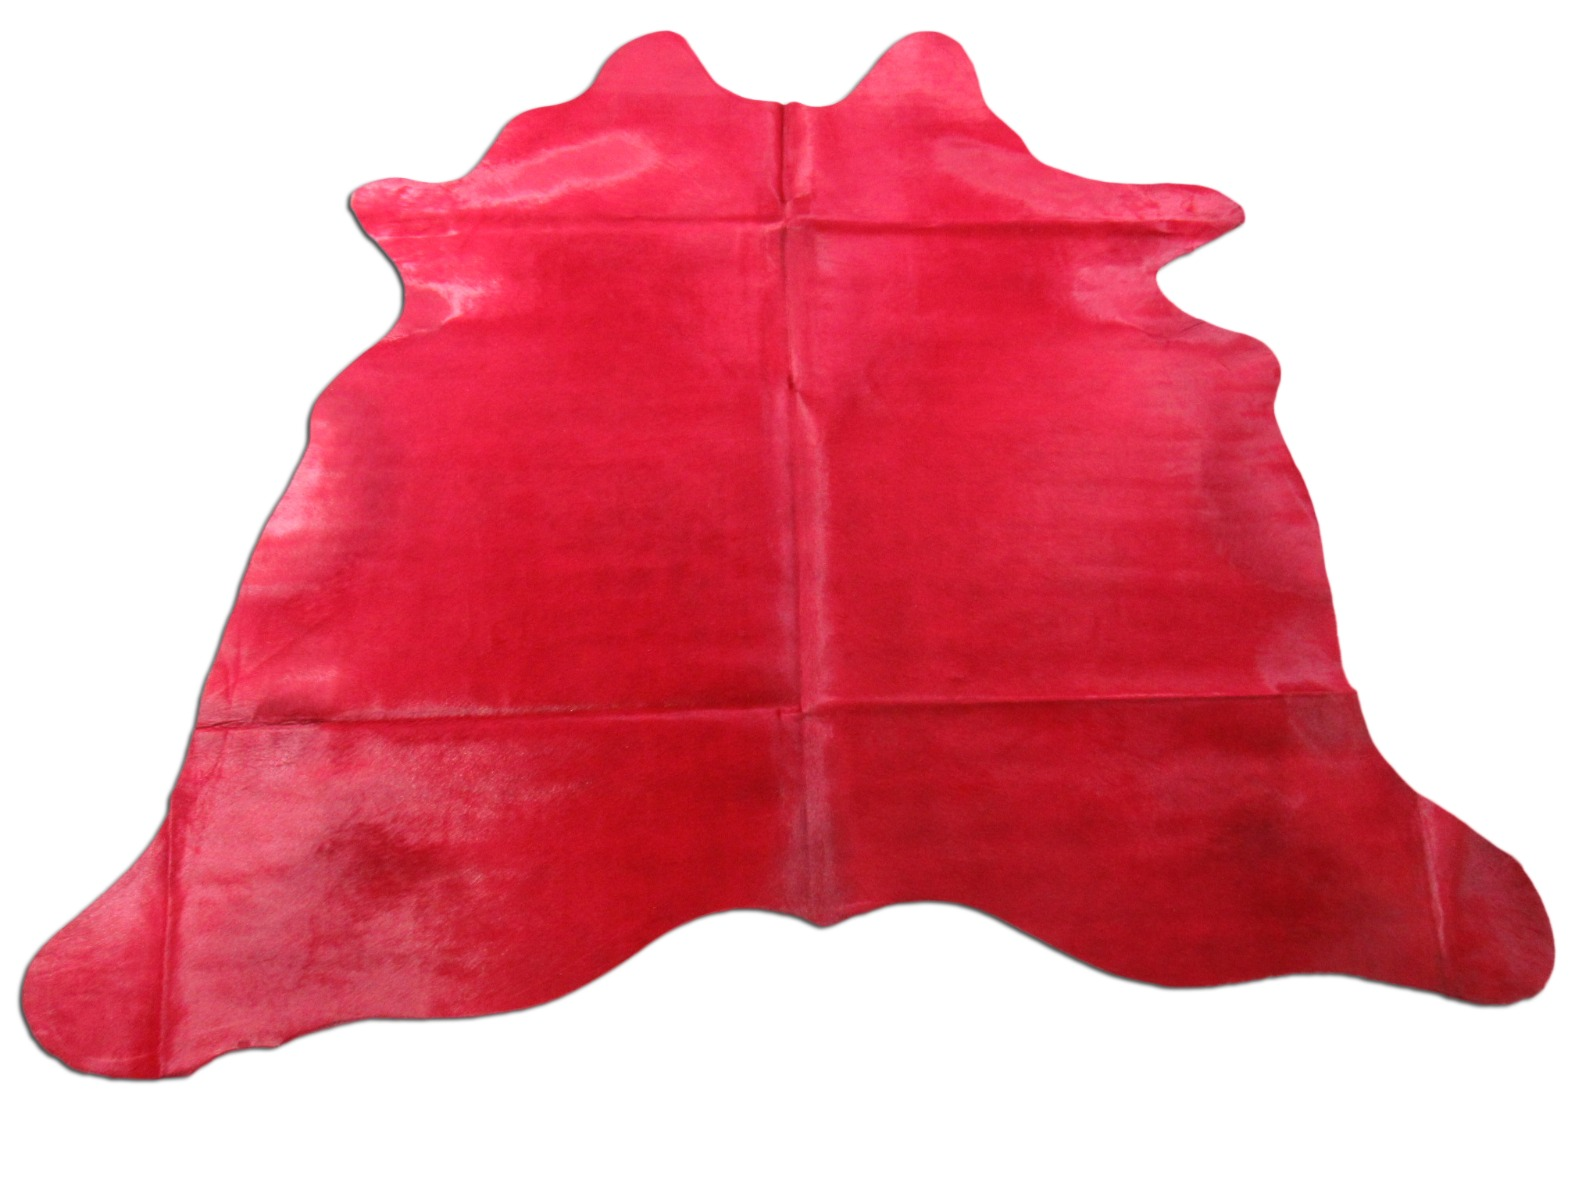 A-1440 Dyed Red Cowhide Rug with Backing Size: 6 3/4' X 7'